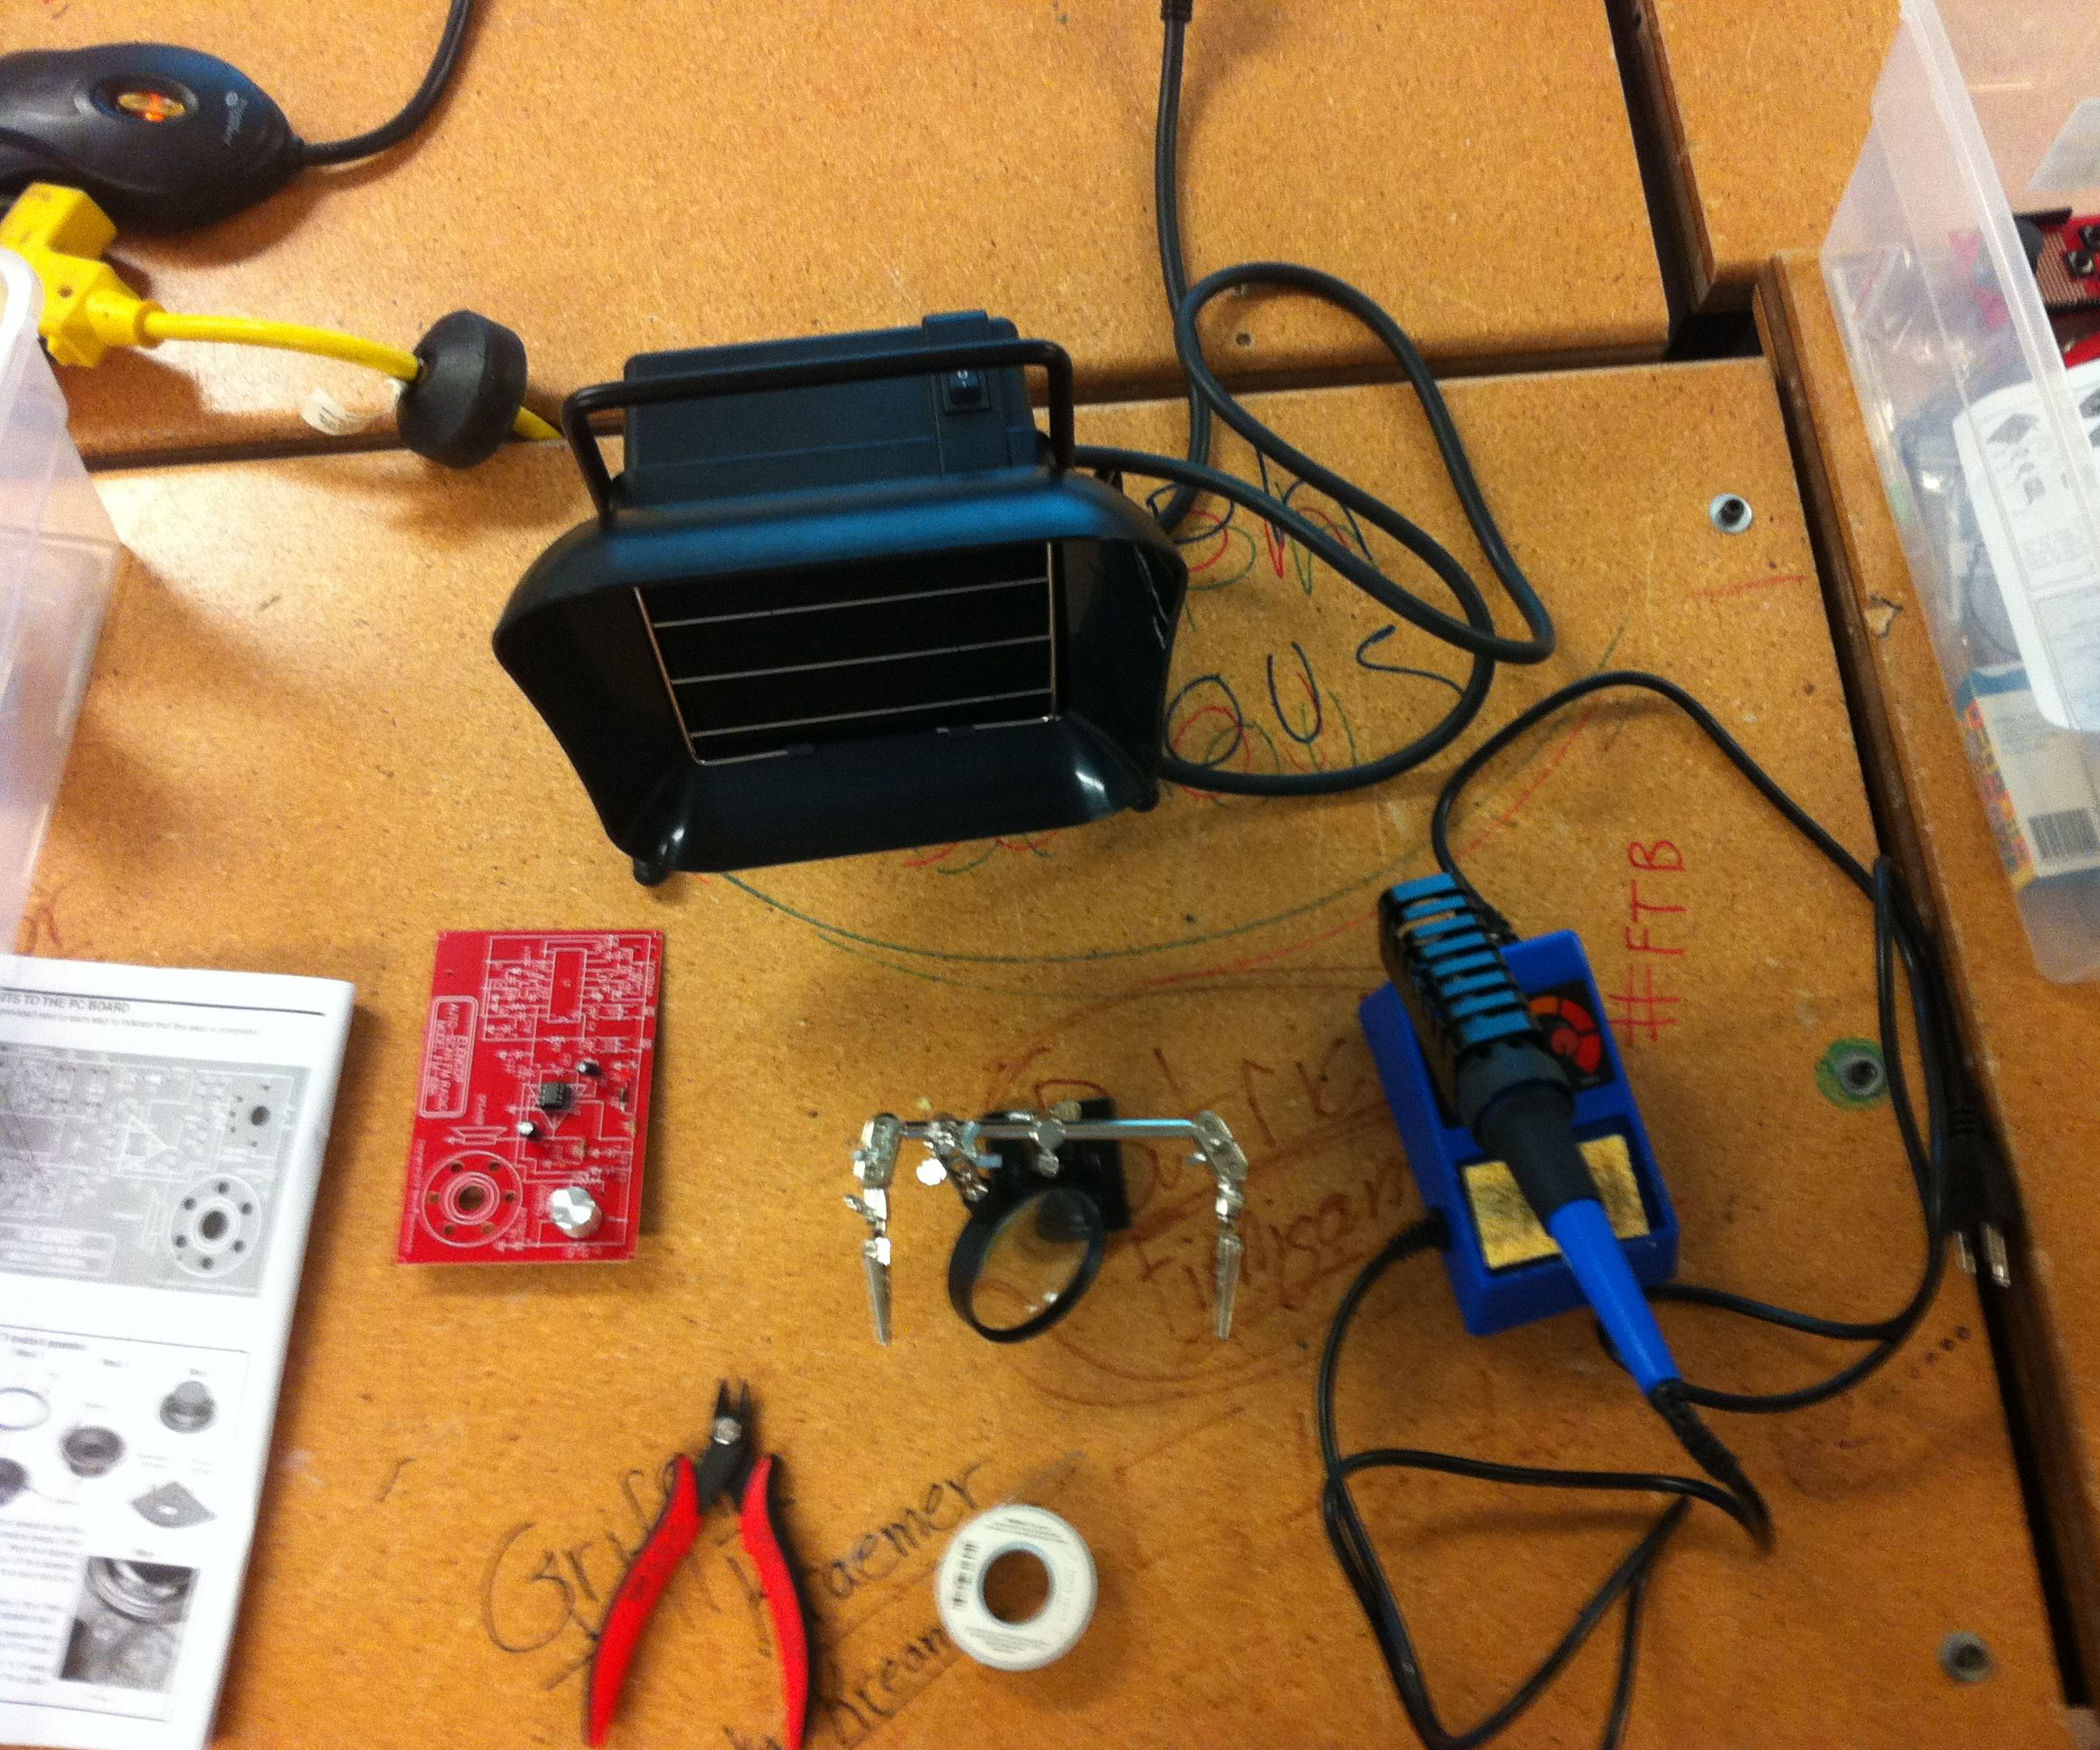 How to Solder: Tips and Tricks